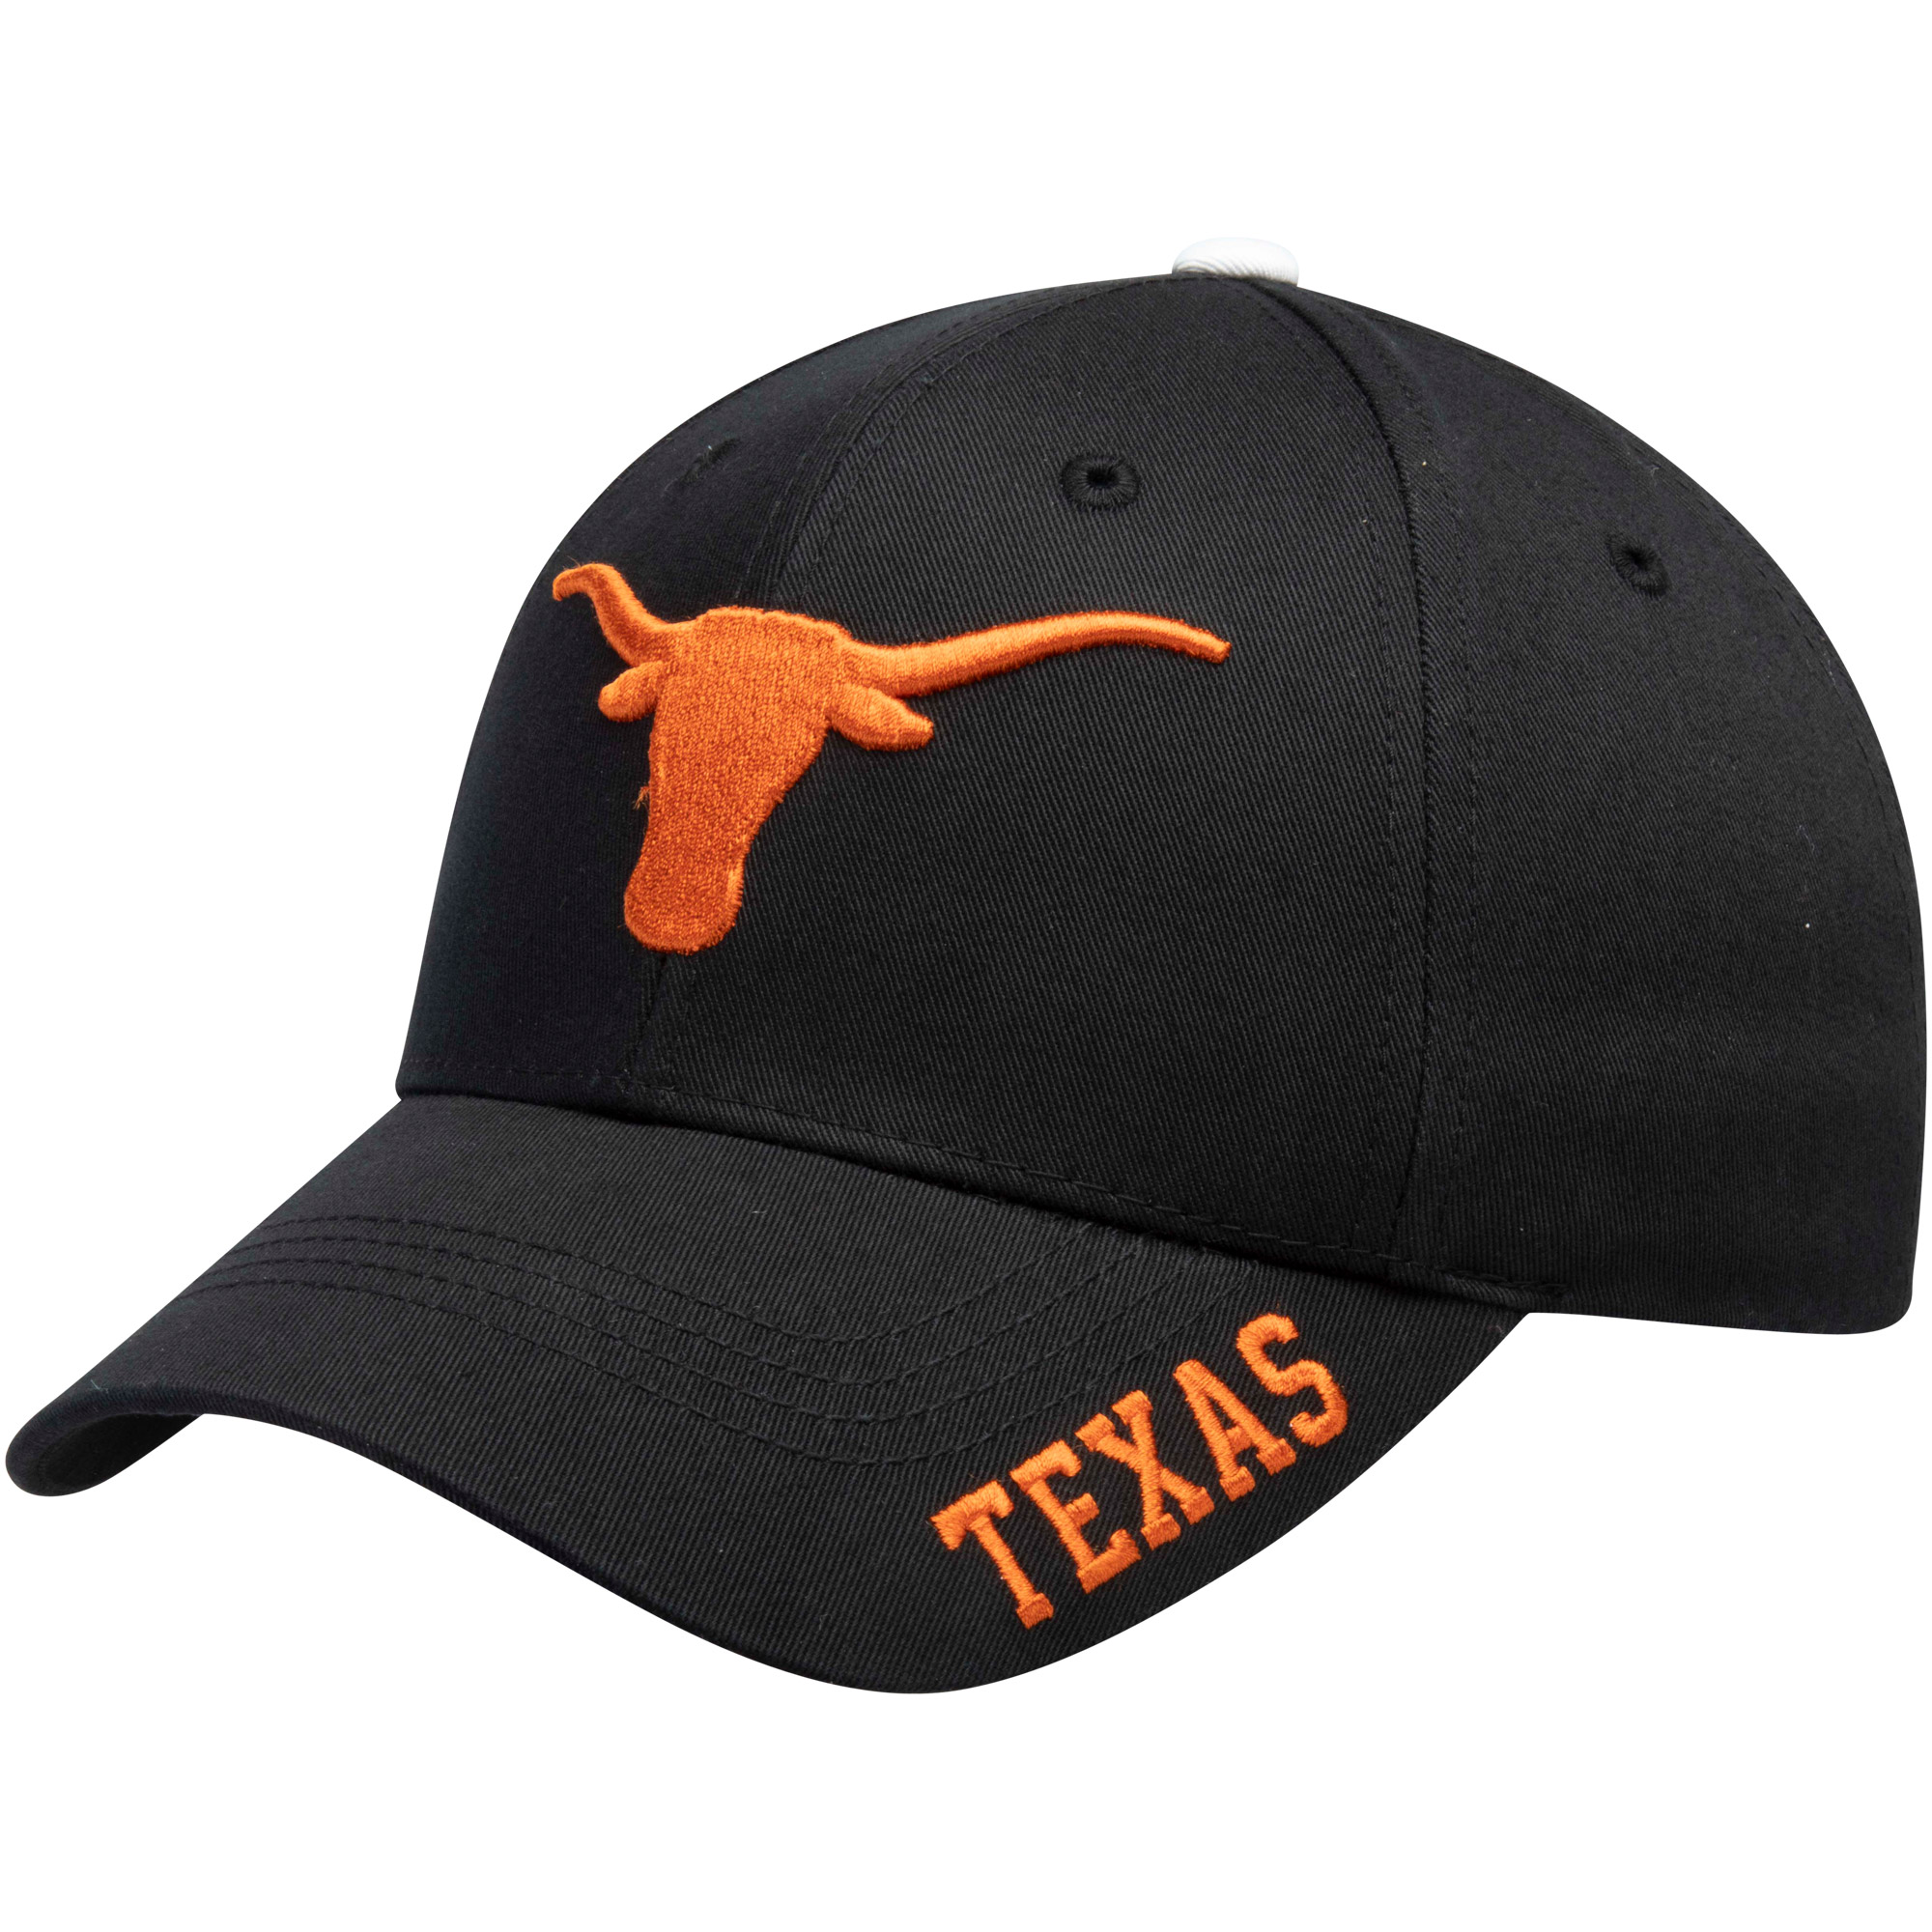 Men's Black Texas Longhorns Kingman Adjustable Hat - OSFA